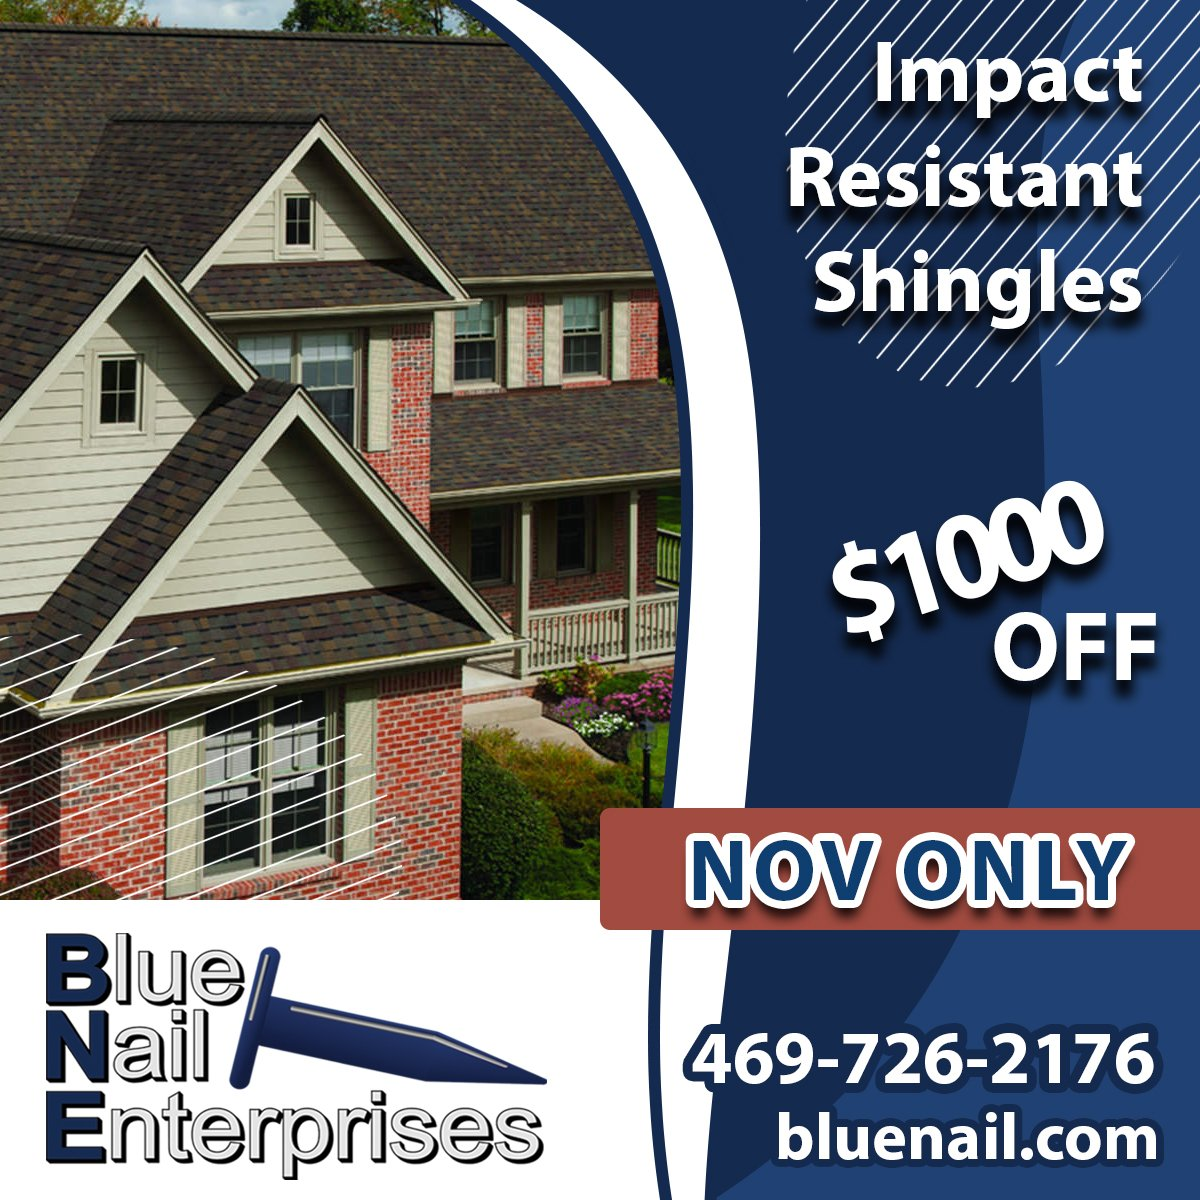 Roofing Coupon Dallas-Fort Worth TX